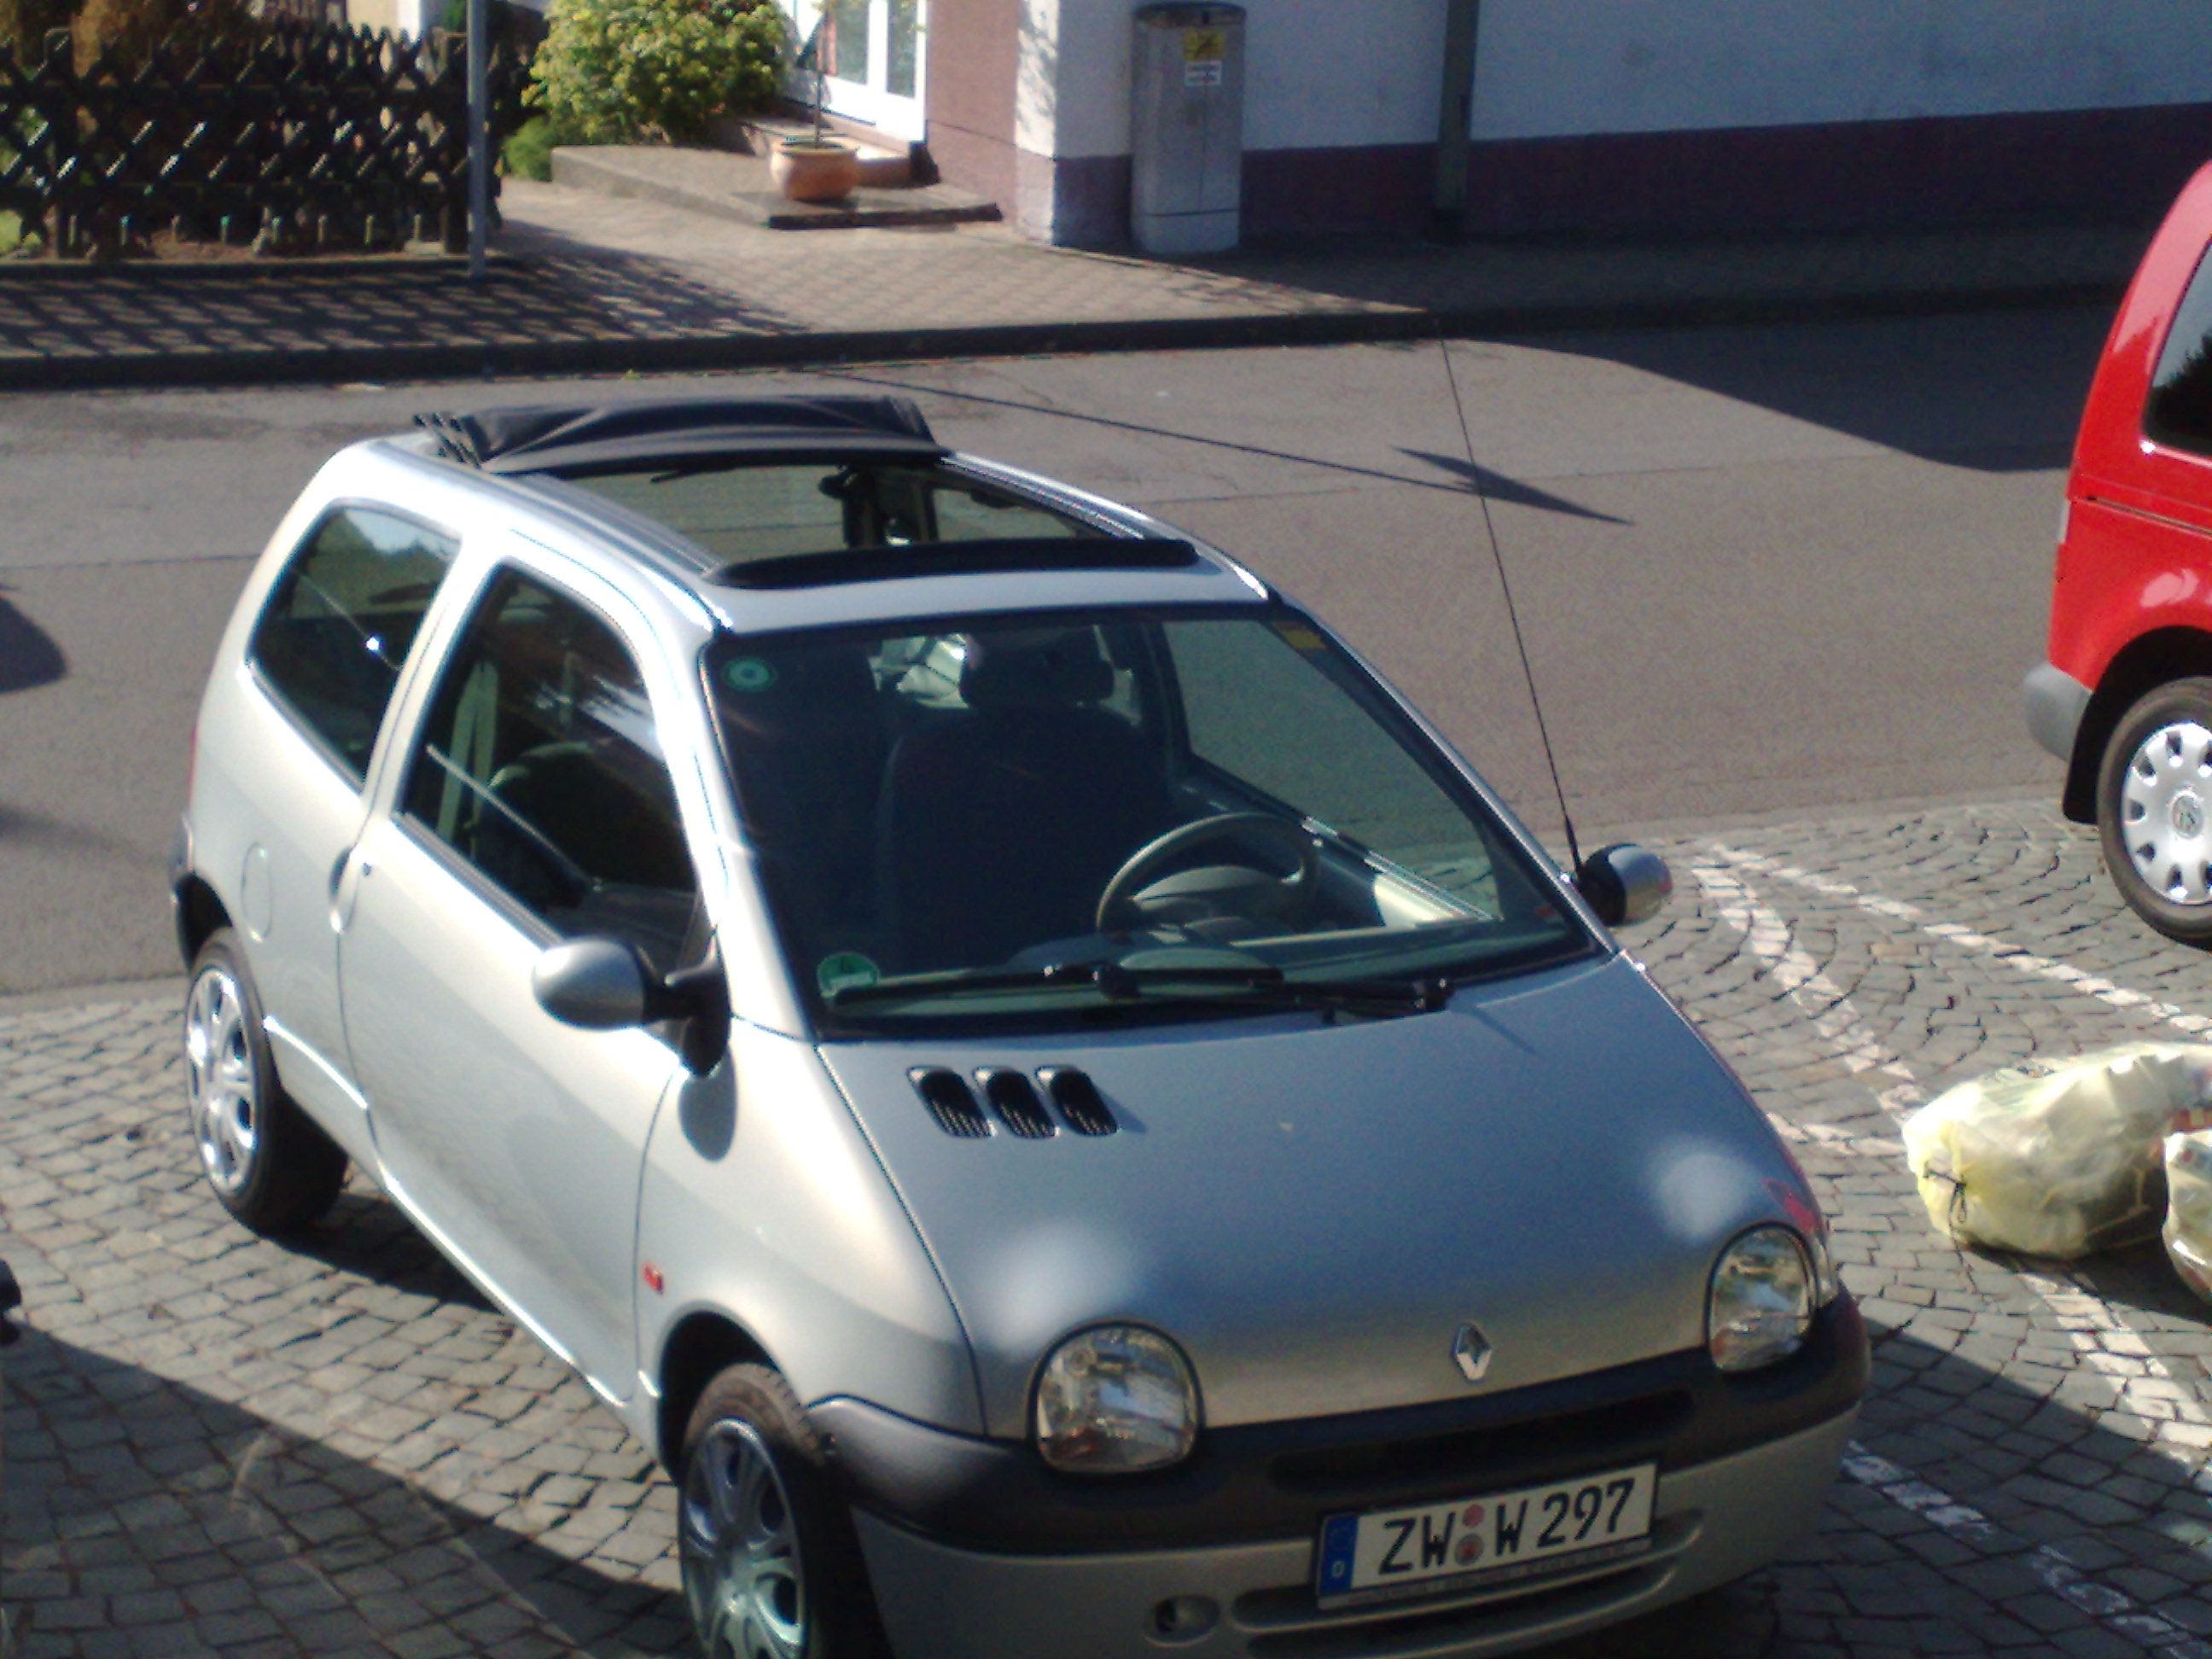 2002 renault twingo c06 pictures information and specs auto. Black Bedroom Furniture Sets. Home Design Ideas